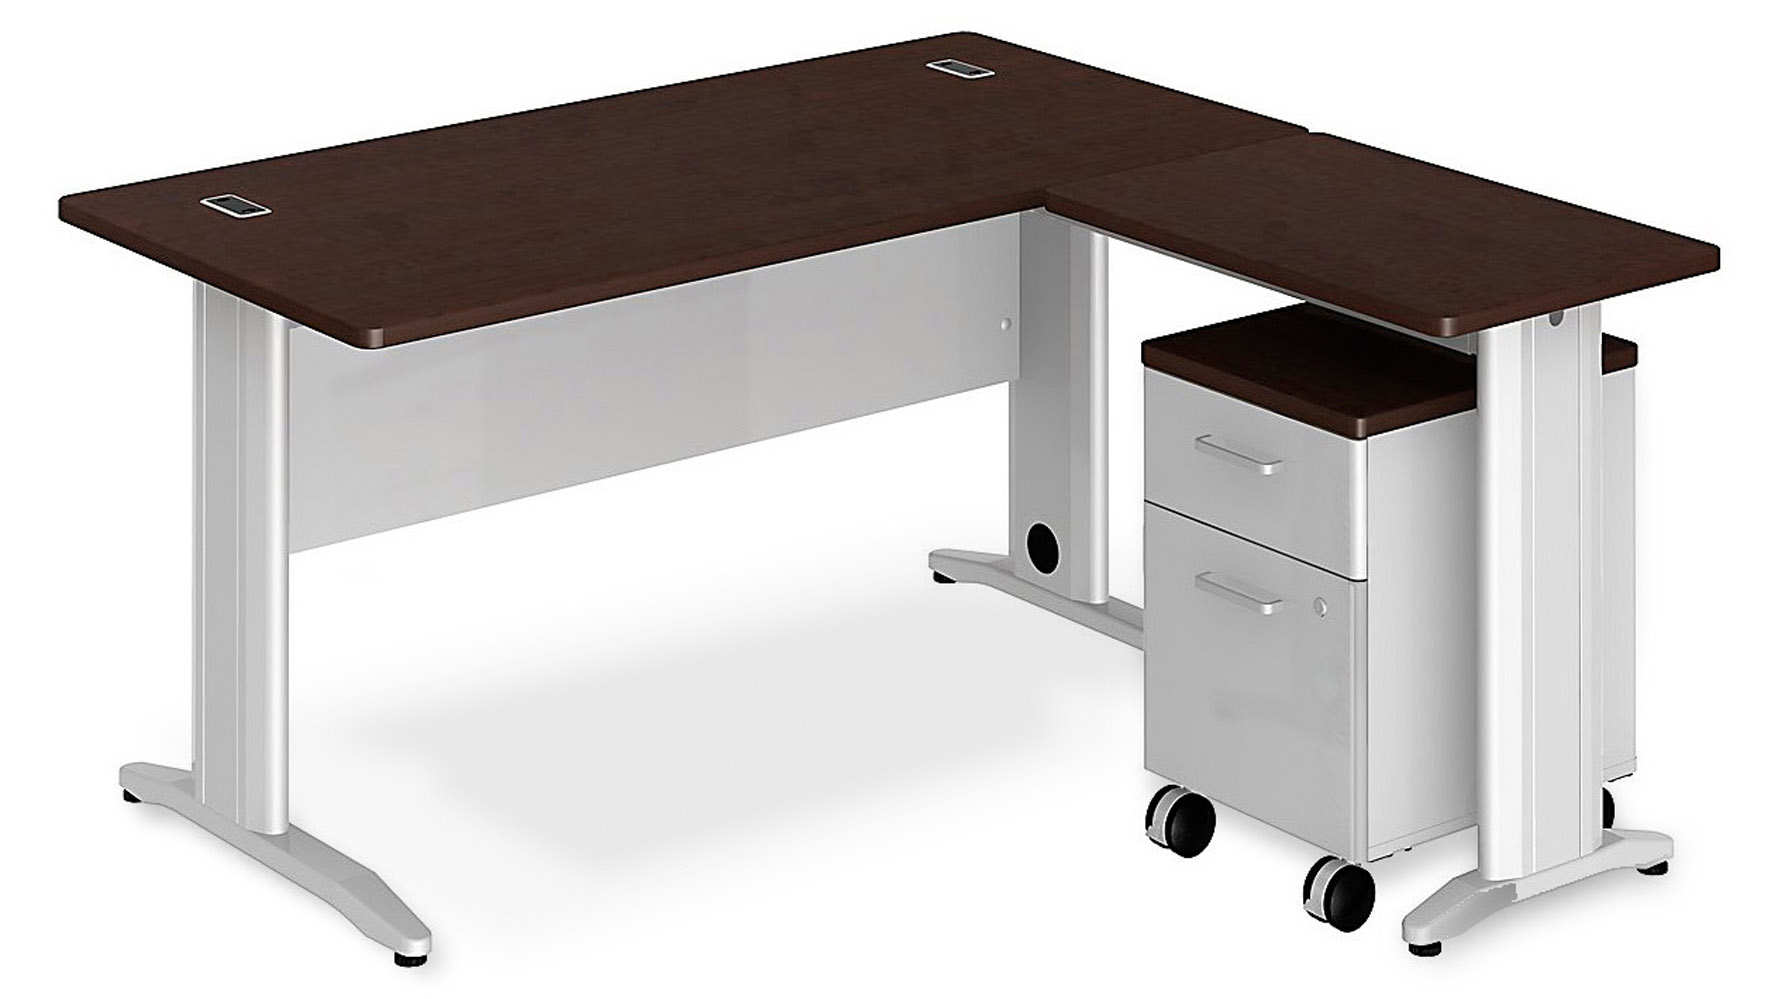 Sector l desk mobile pedestal zuri furniture - Mobile office desk ...